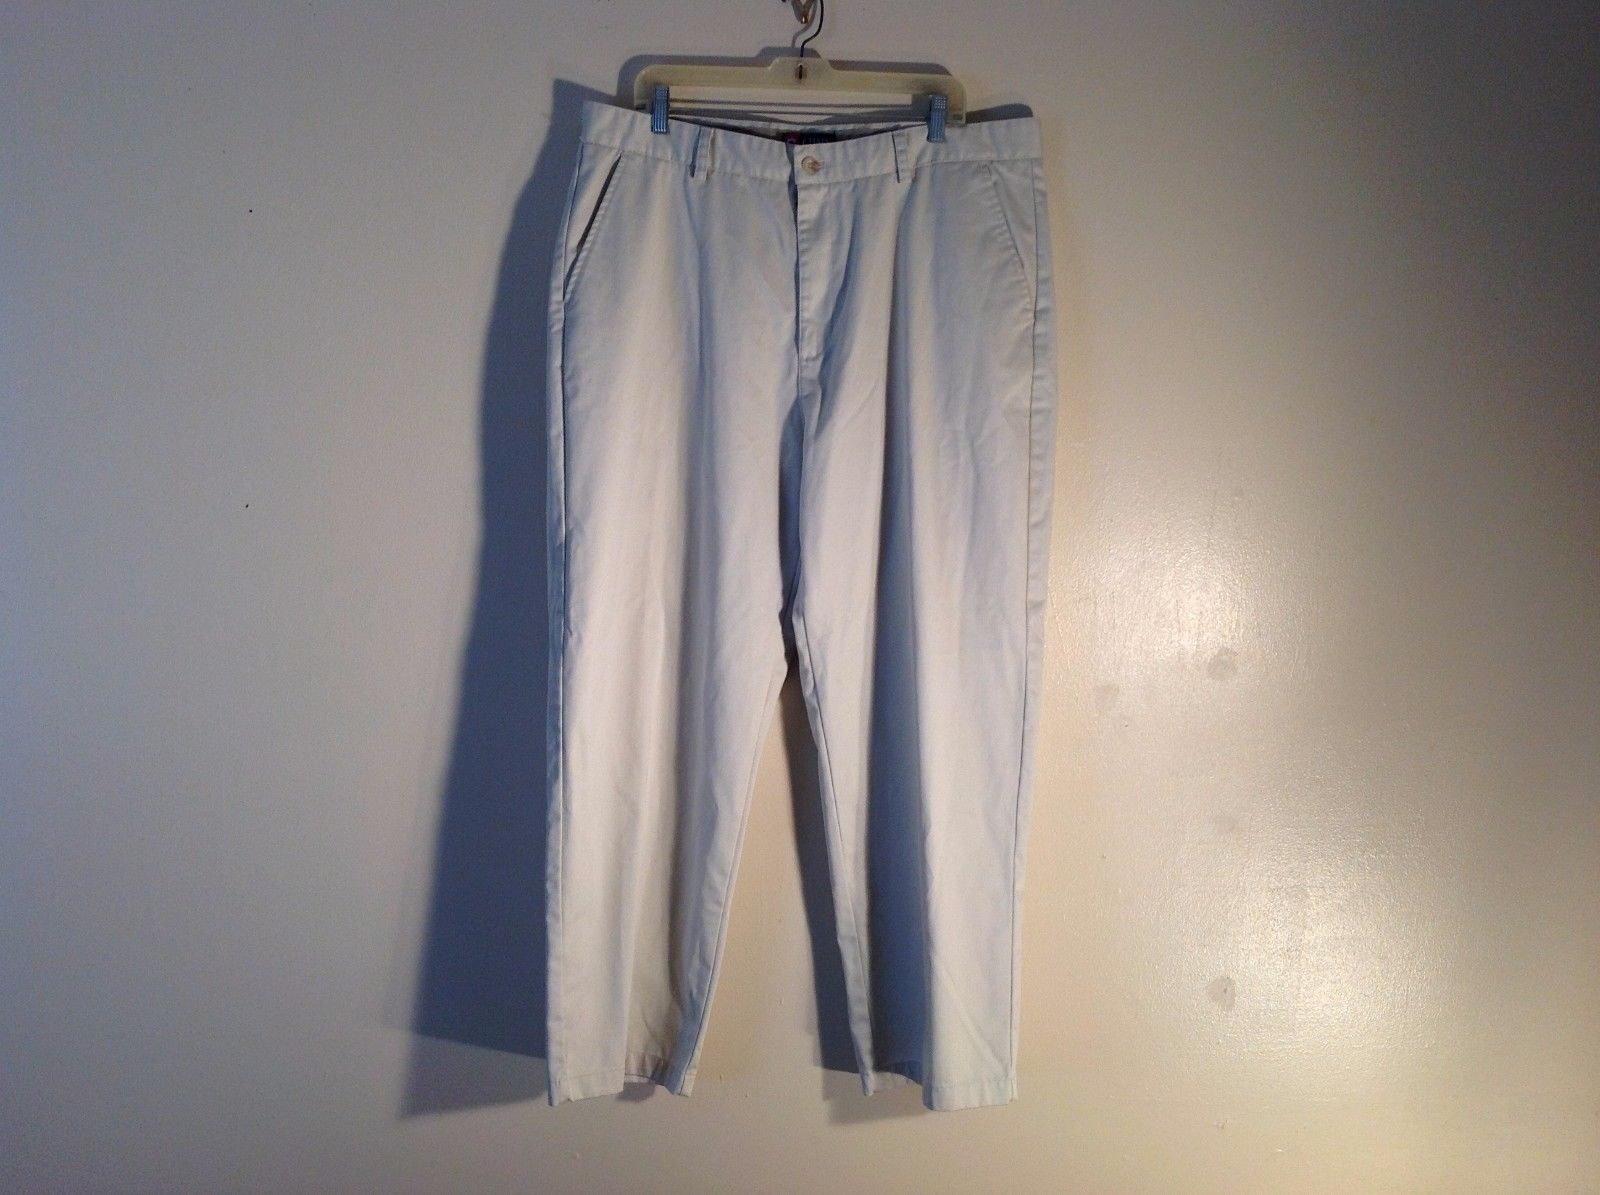 Excellent Condition Chaps W40 L30 Light Color Khakis Made In Egypt 100% Cotton